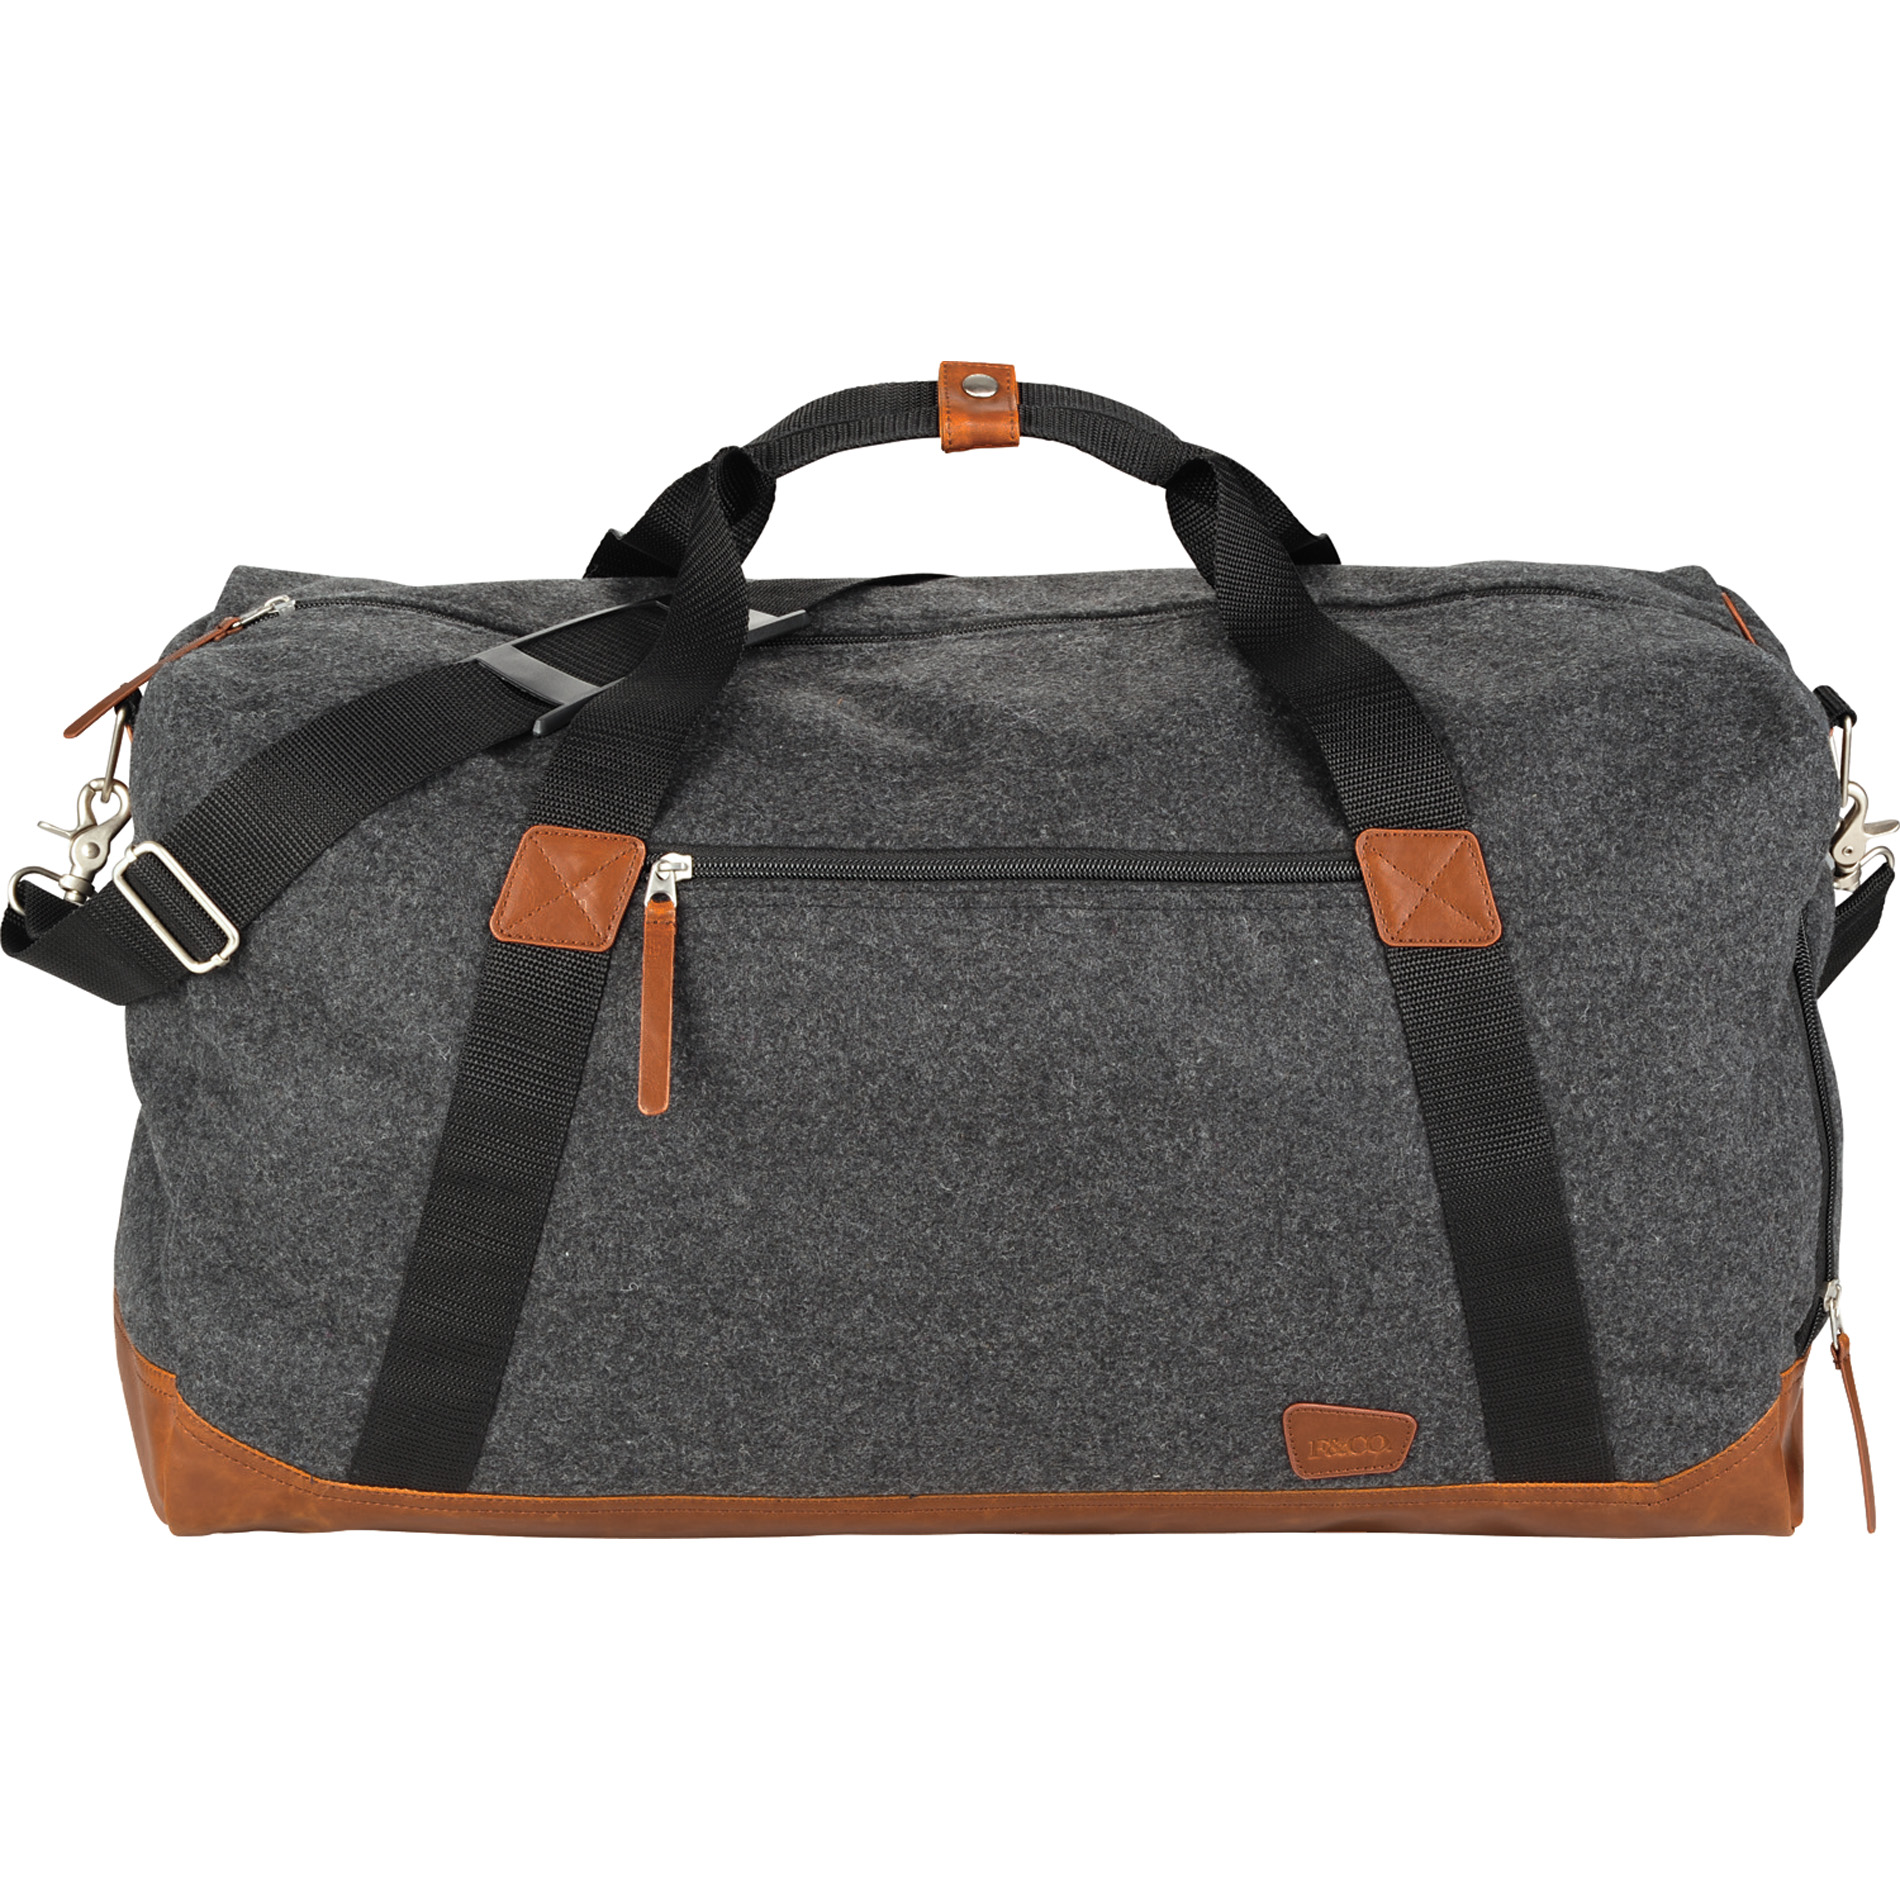 "Field & Co.® 7950-79 - Campster 22"" Duffel Bag"